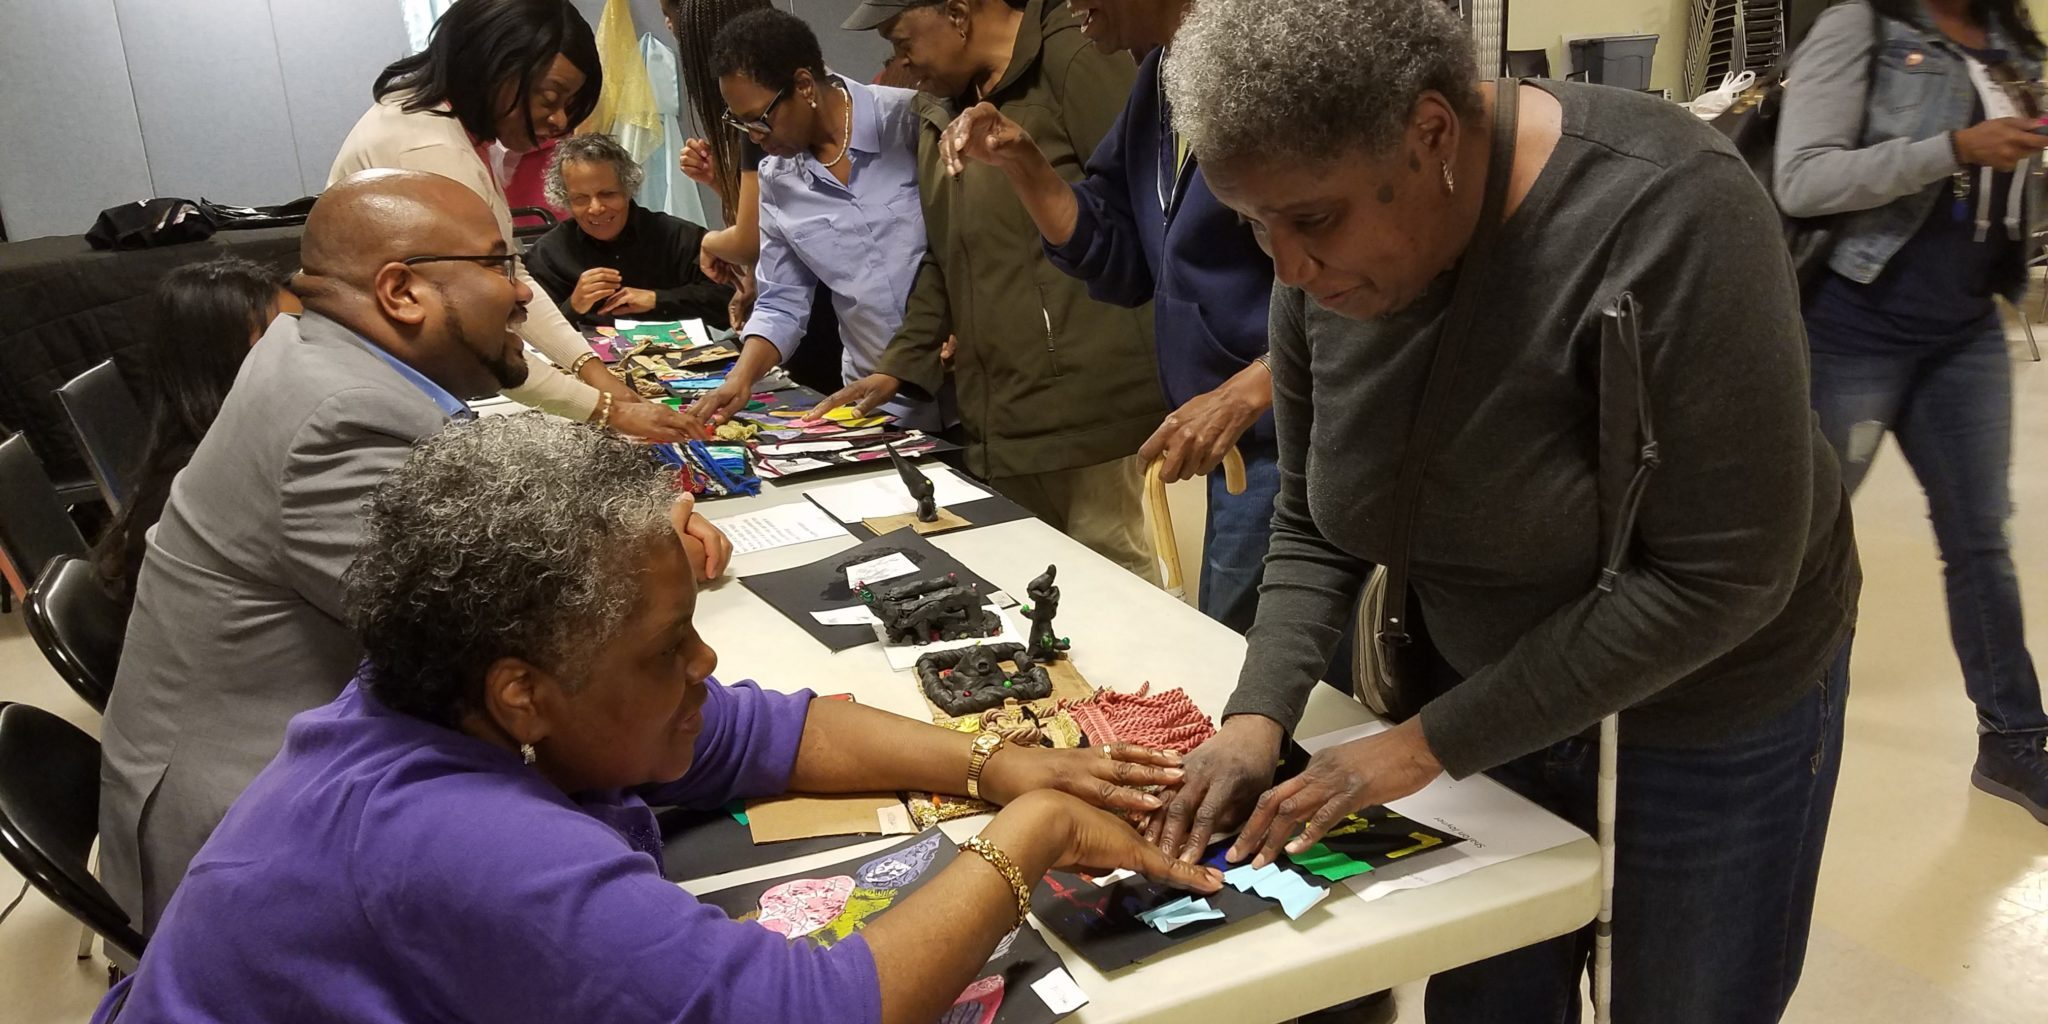 creative aging program participants work on crafts together at a common table